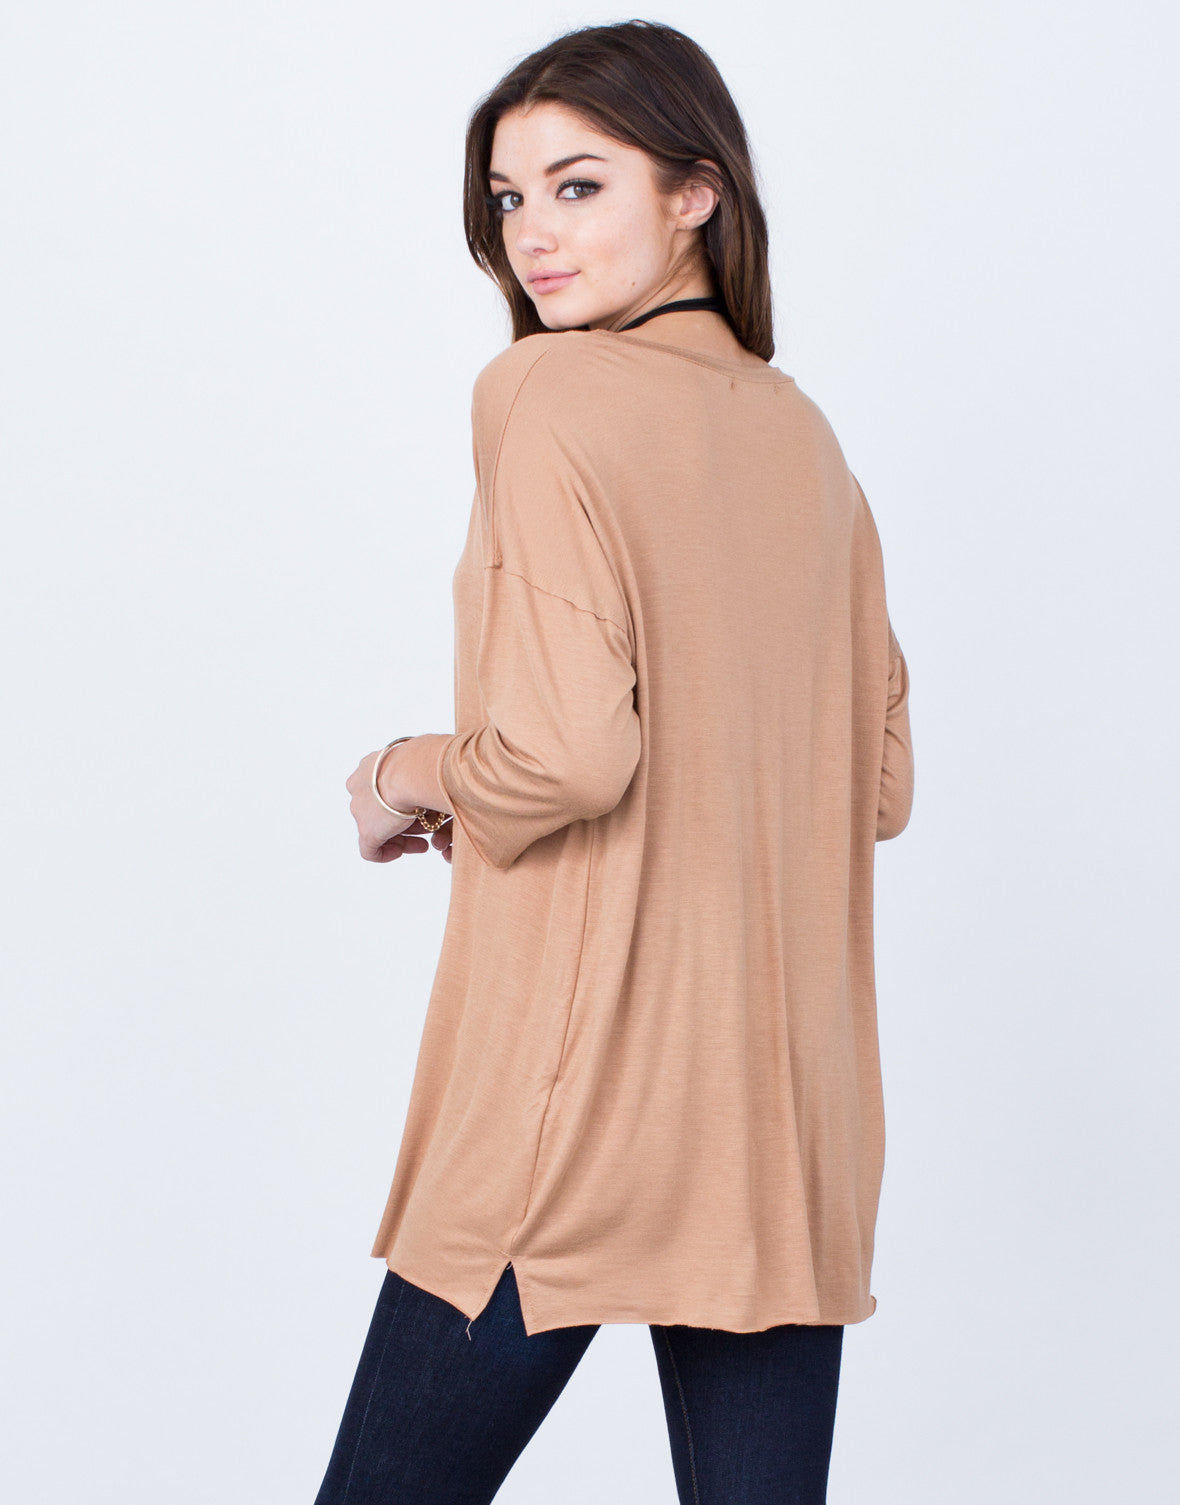 Back View of Casual Oversized Tunic Top